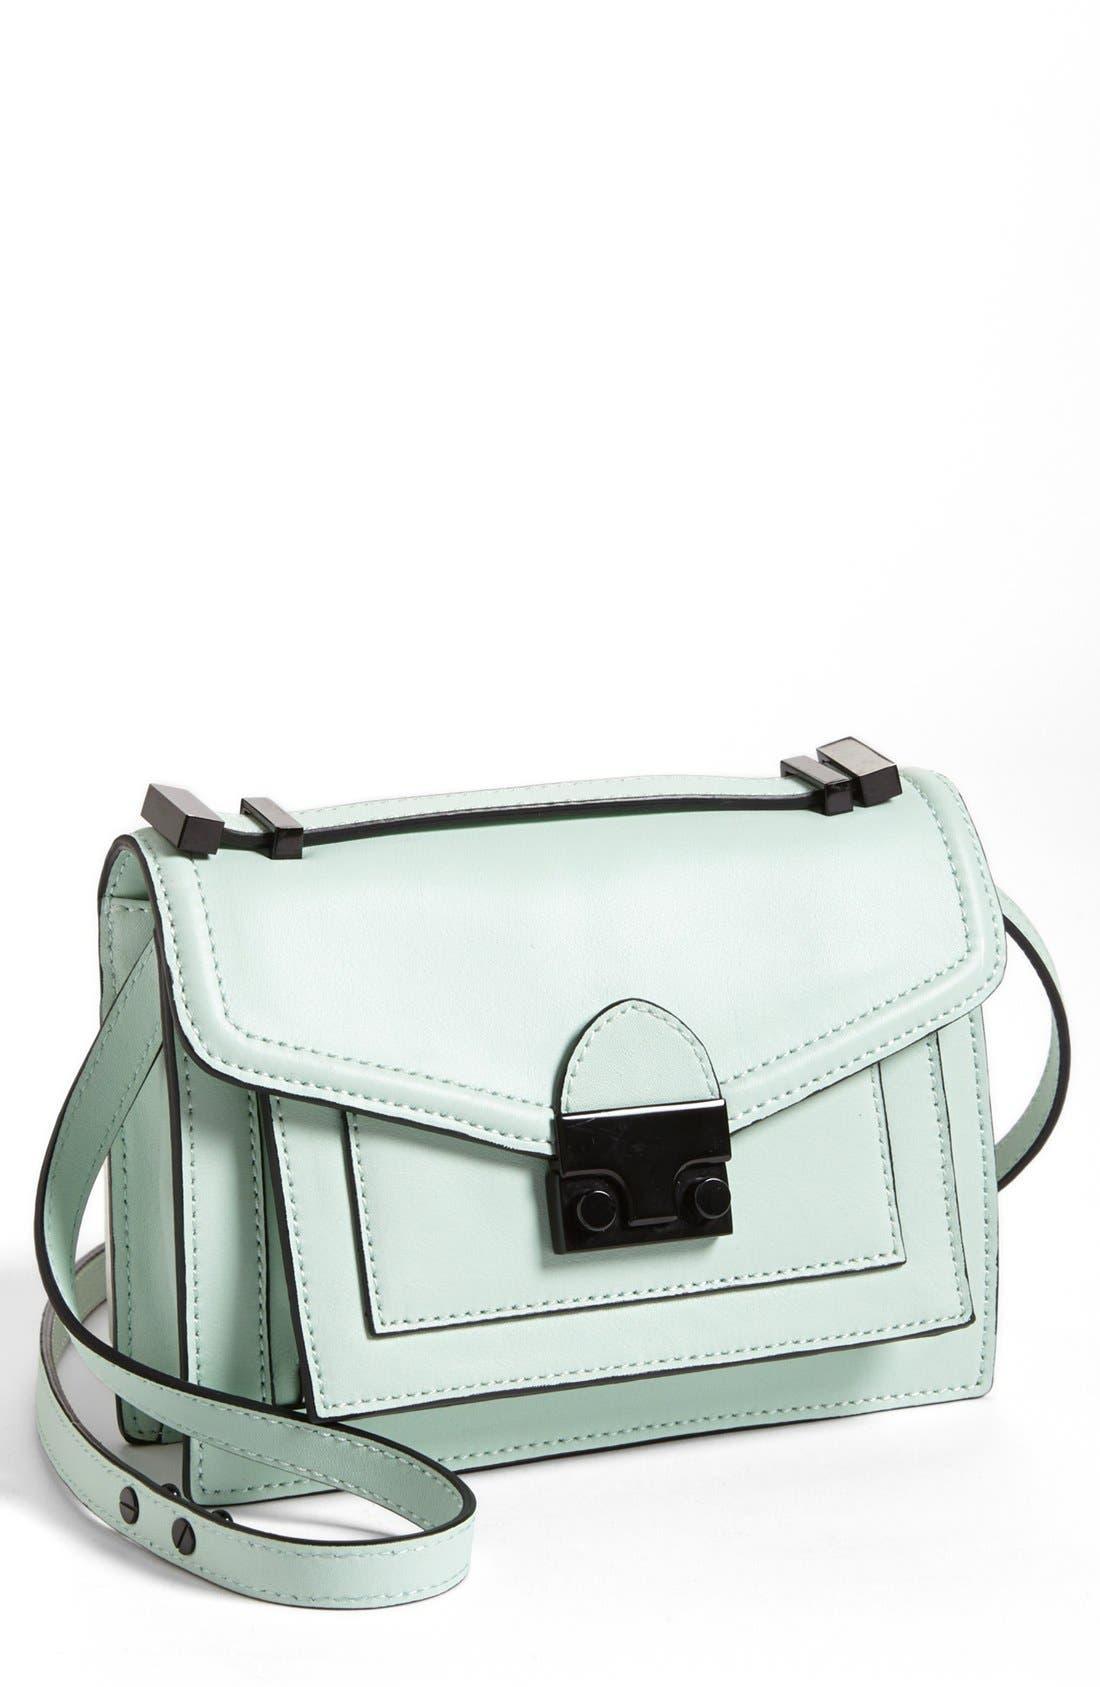 Main Image - Loeffler Randall 'Rider - Mini' Leather Satchel